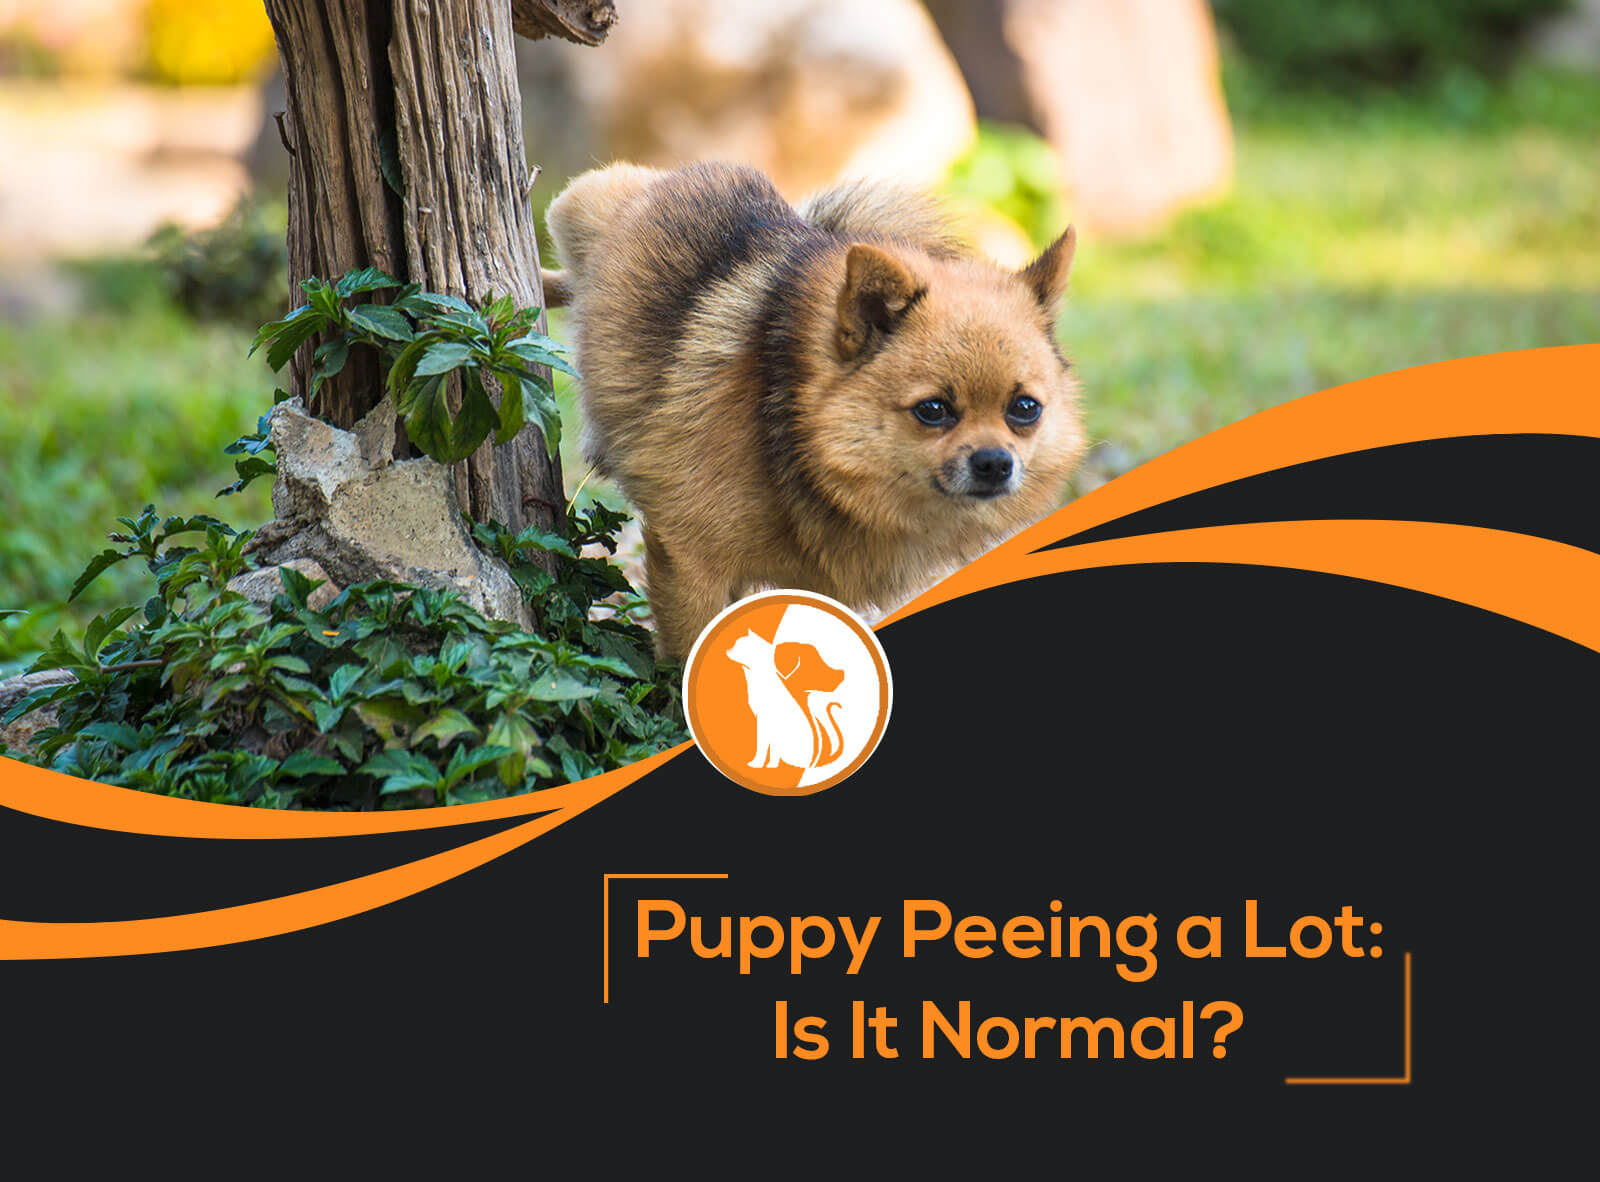 Puppy Peeing a Lot: Is It Normal?